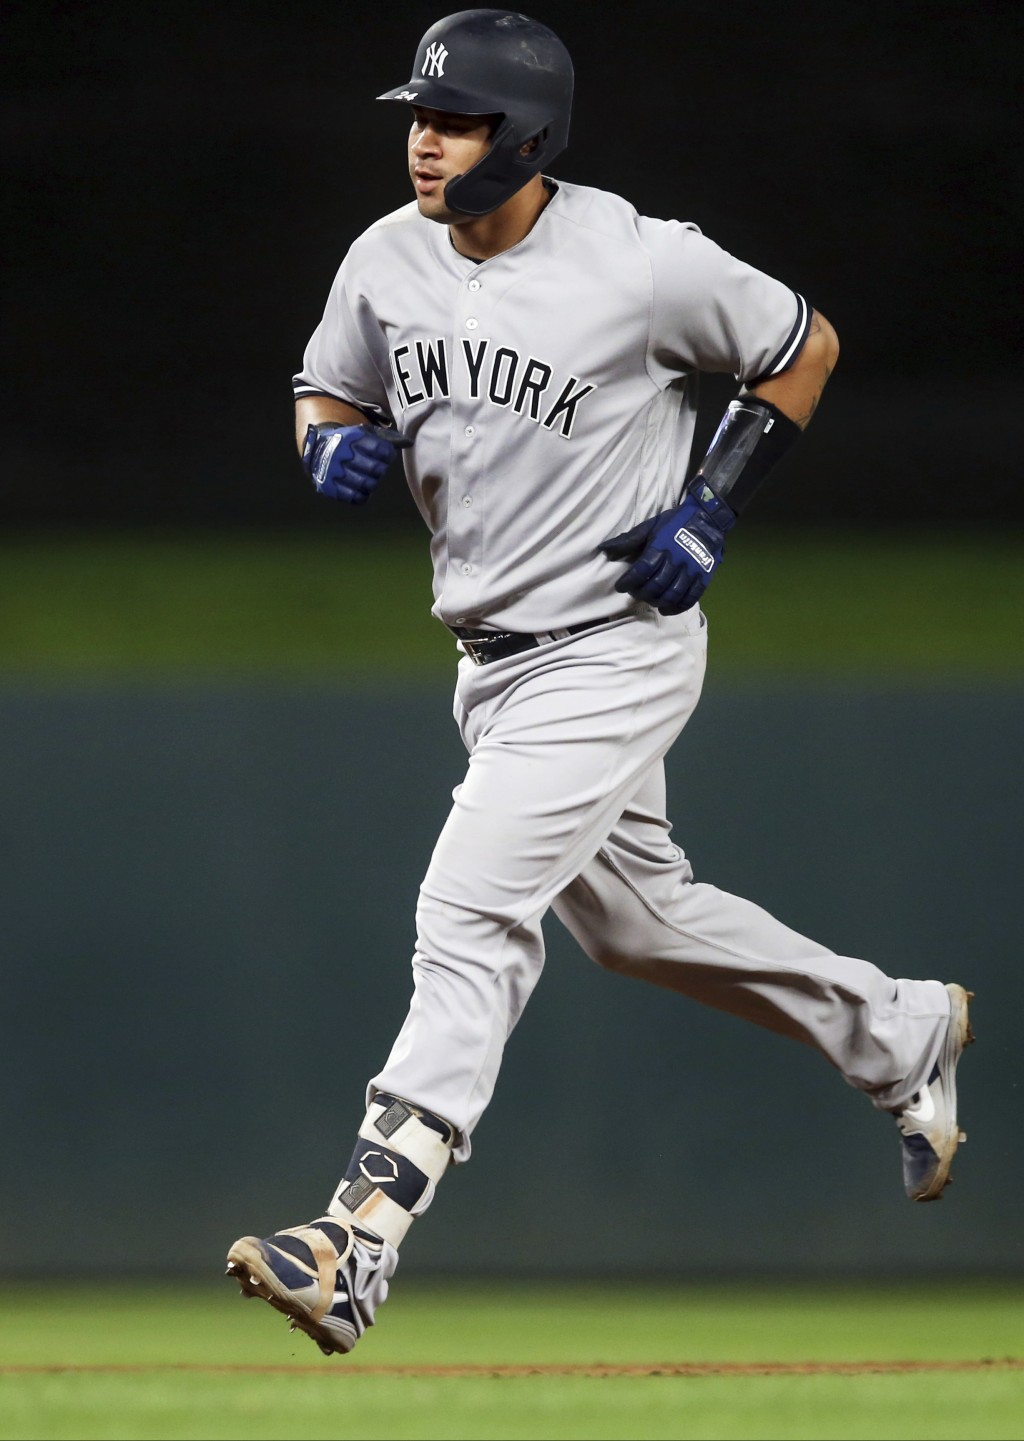 New York Yankees' Gary Sanchez runs the bases on a solo home run off Minnesota Twins pitcher Kyle Gibson in the sixth inning of a baseball game Monday